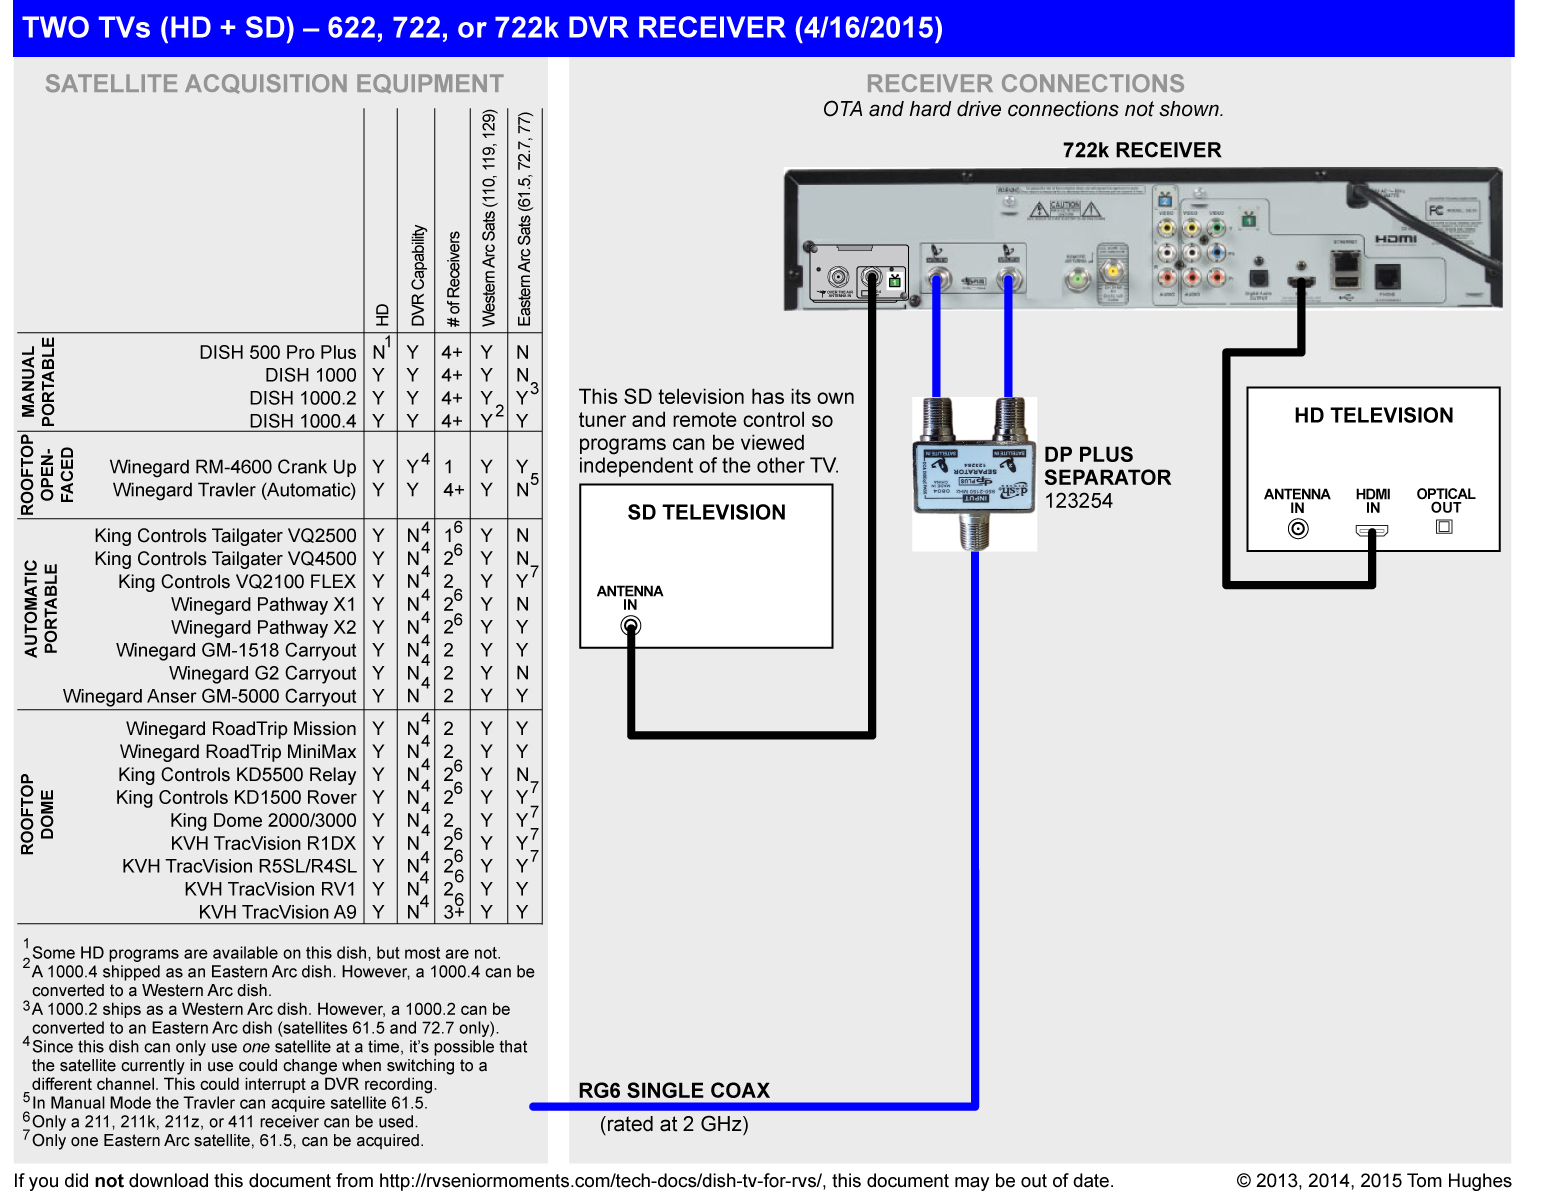 Dish Work 722k Wiring Diagram Picture FULL HD Version Diagram Picture -  ARROW-DIAGRAM.EMBALLAGES-SOUS-VIDE.FREMBALLAGES-SOUS-VIDE.FR